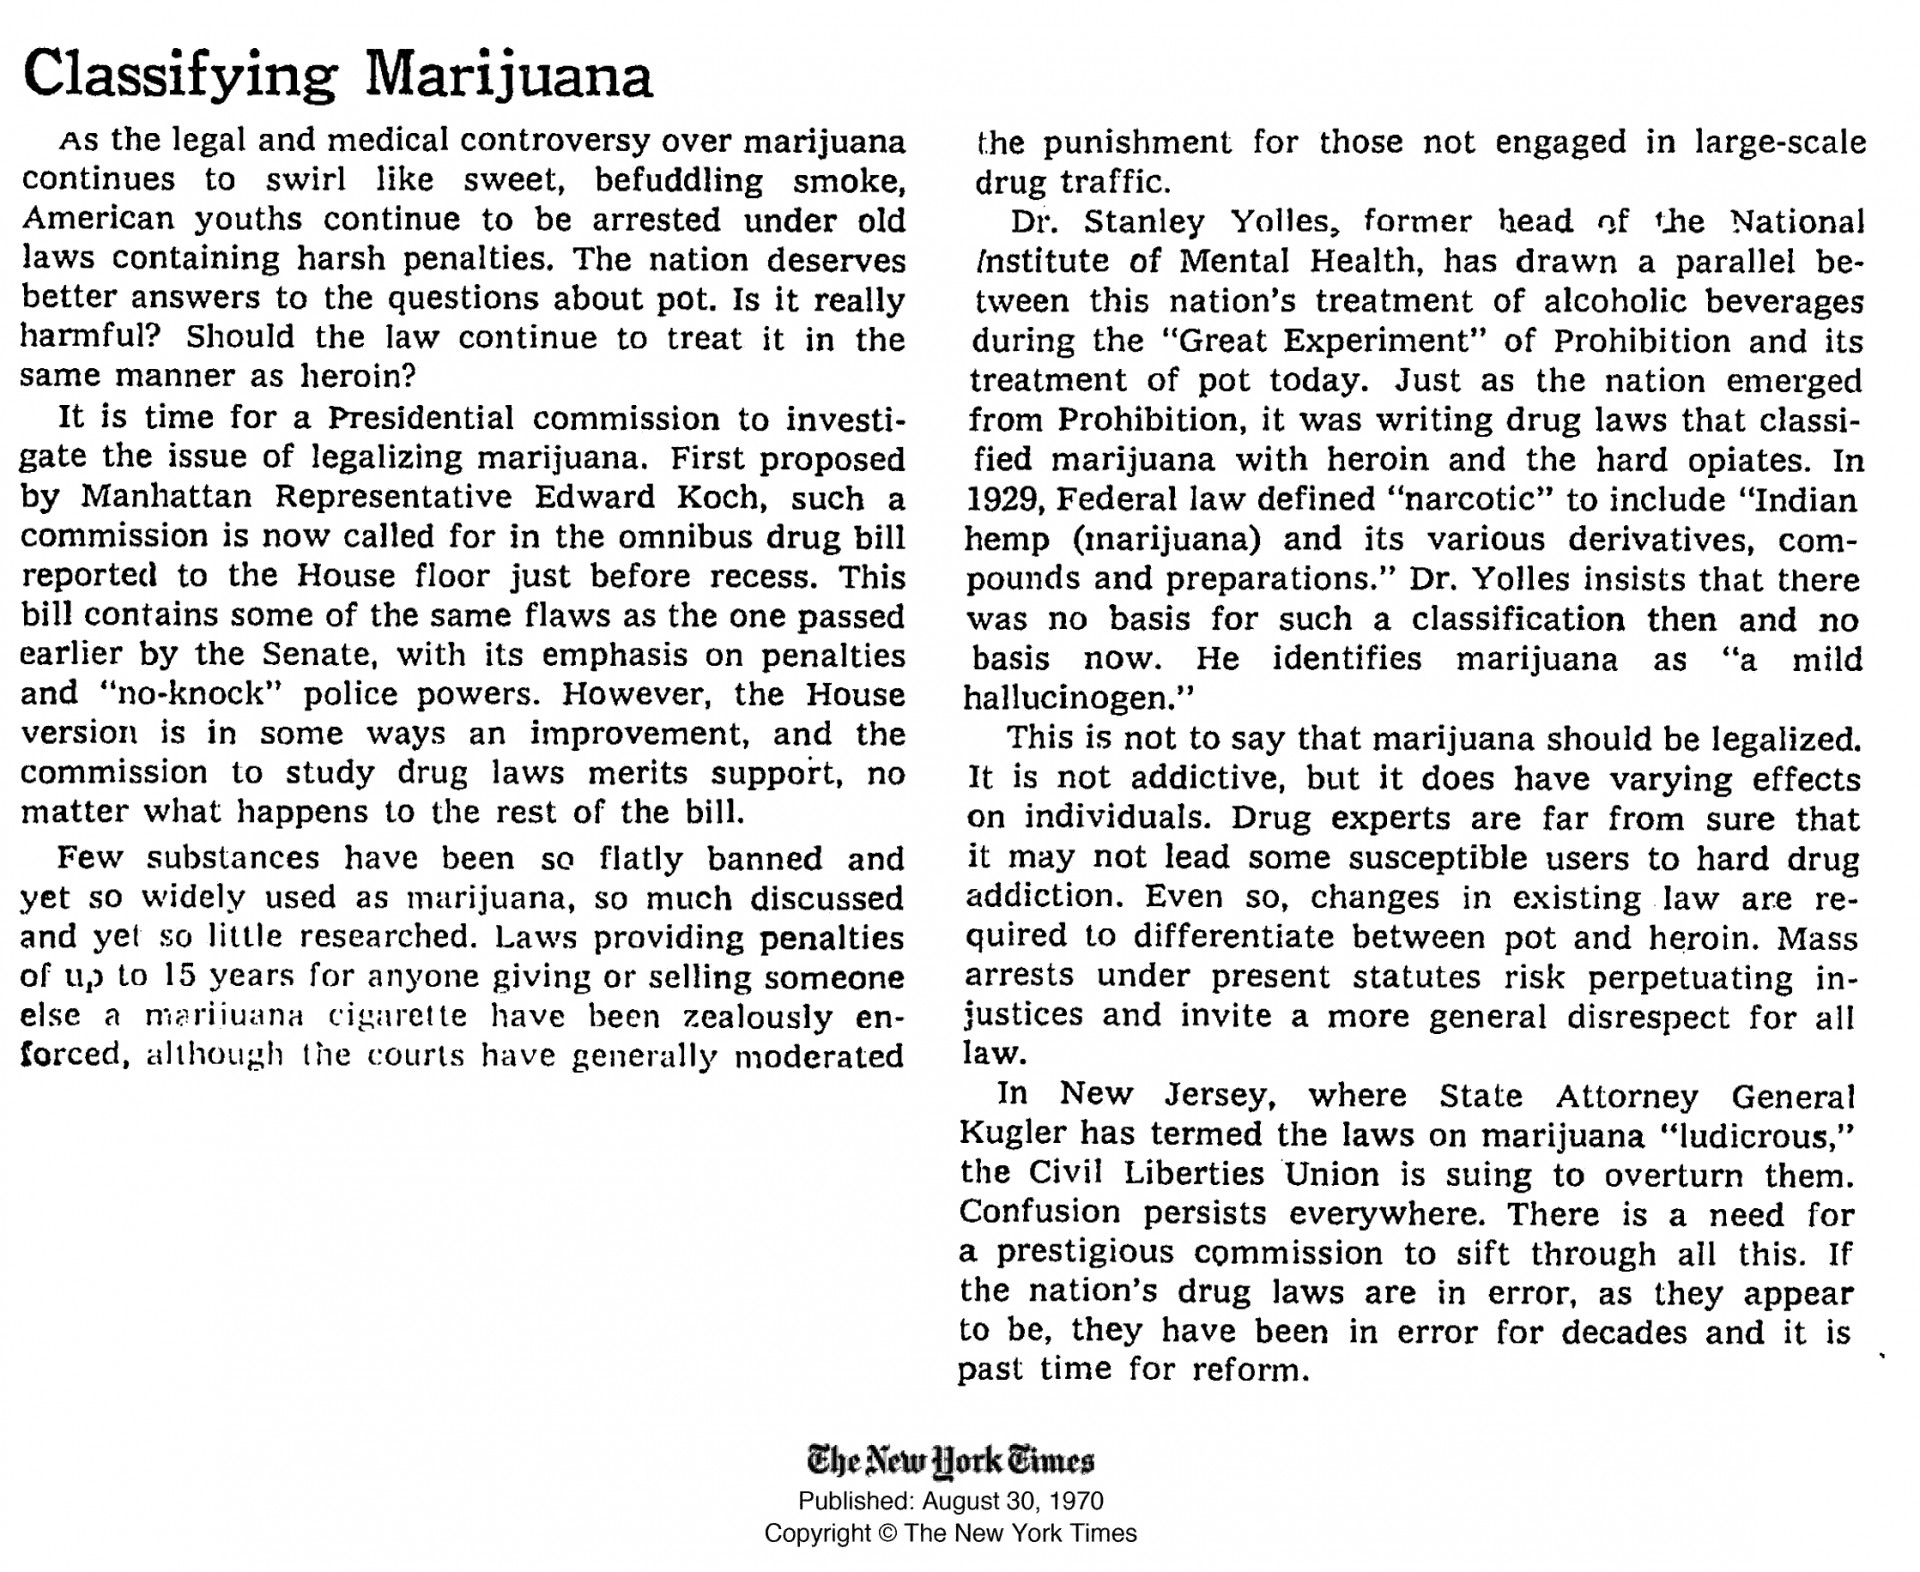 005 Drug Legalization Essay Should Drugs Legalized Co Essays On High Time Classifying Marijuana August Argumentative Top Be Persuasive Medical Illegal 1920